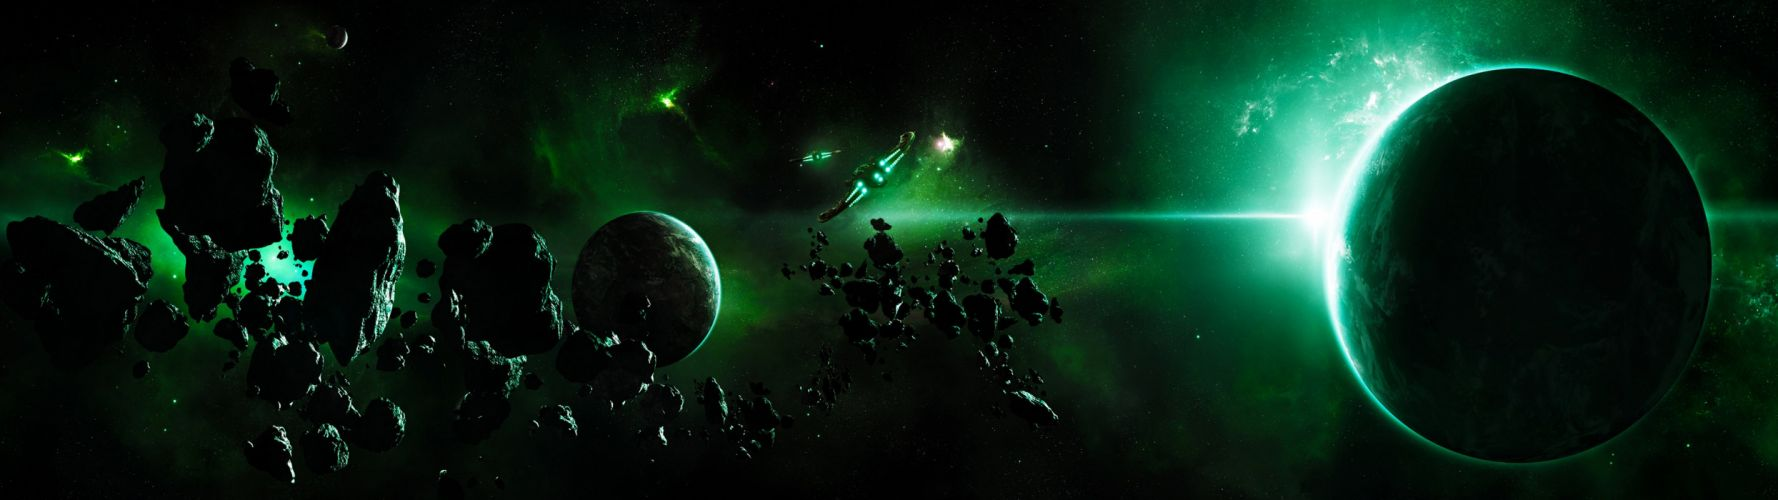 outer space spaceships vehicles wallpaper